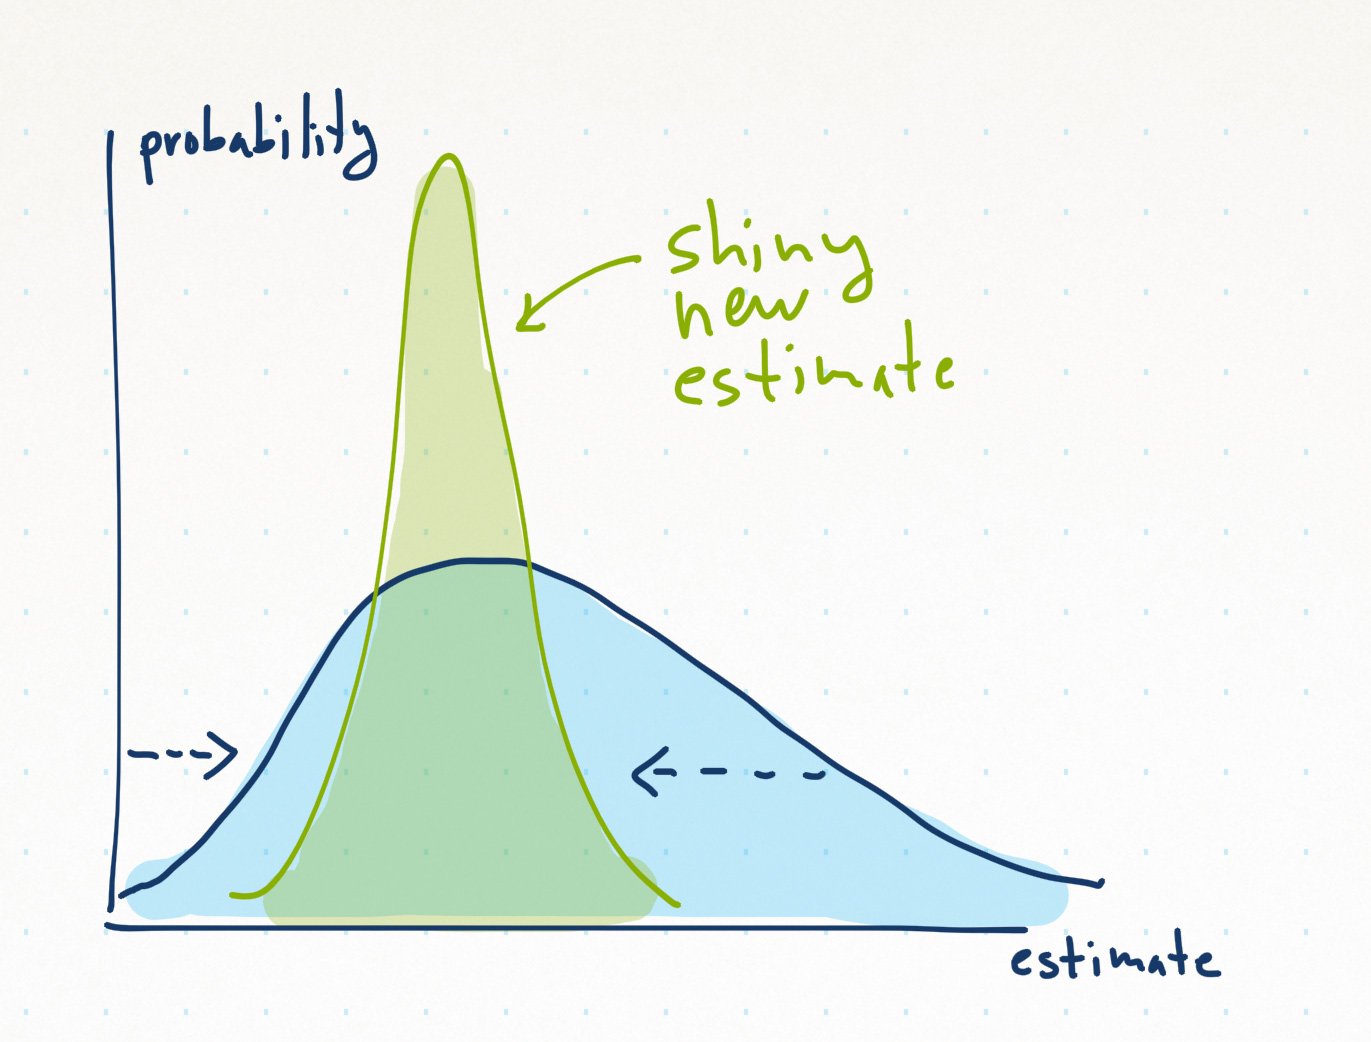 narrow_down_estimate_distribution